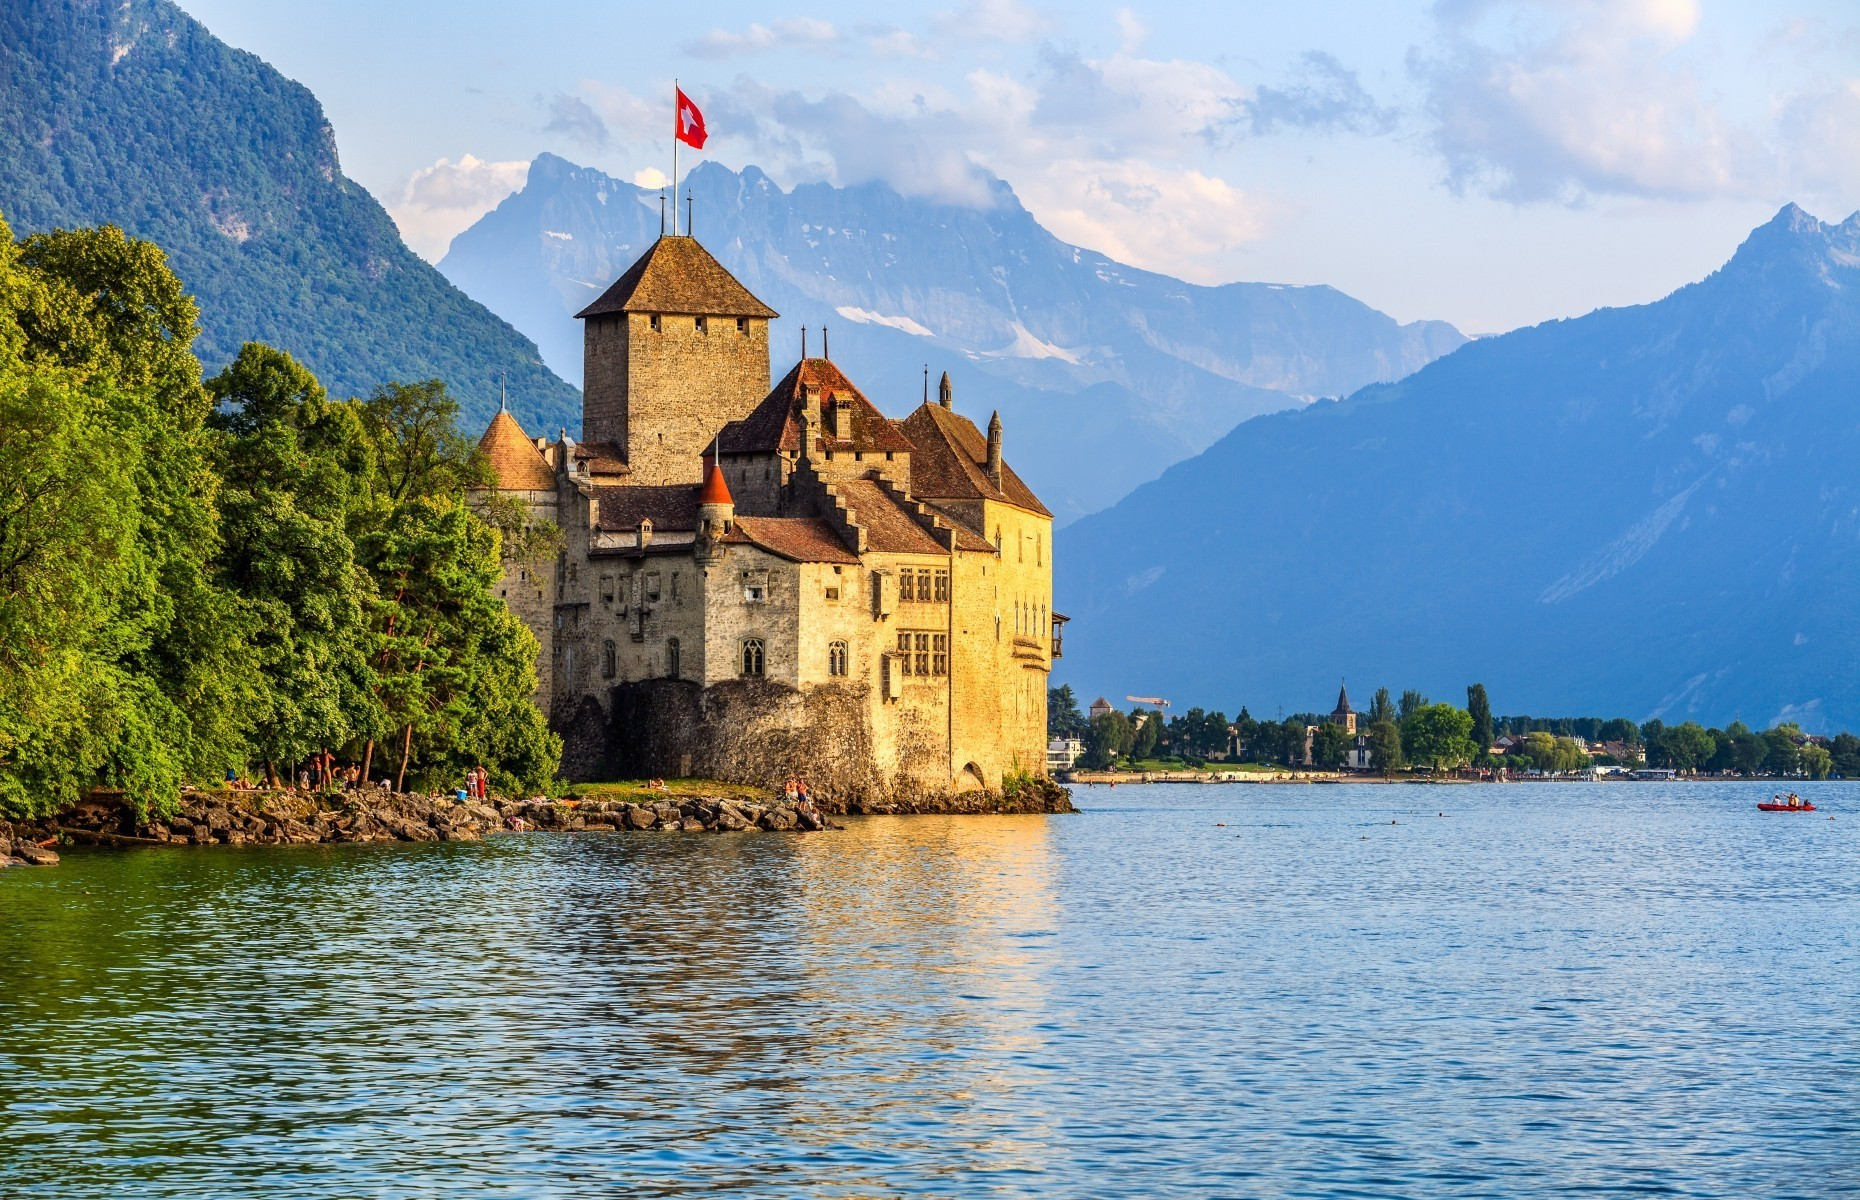 Slide 18 of 41: Prince Eric's castle in the movie The Little Mermaid was inspired by Chillon Castle on the banks of Lake Geneva in Switzerland.